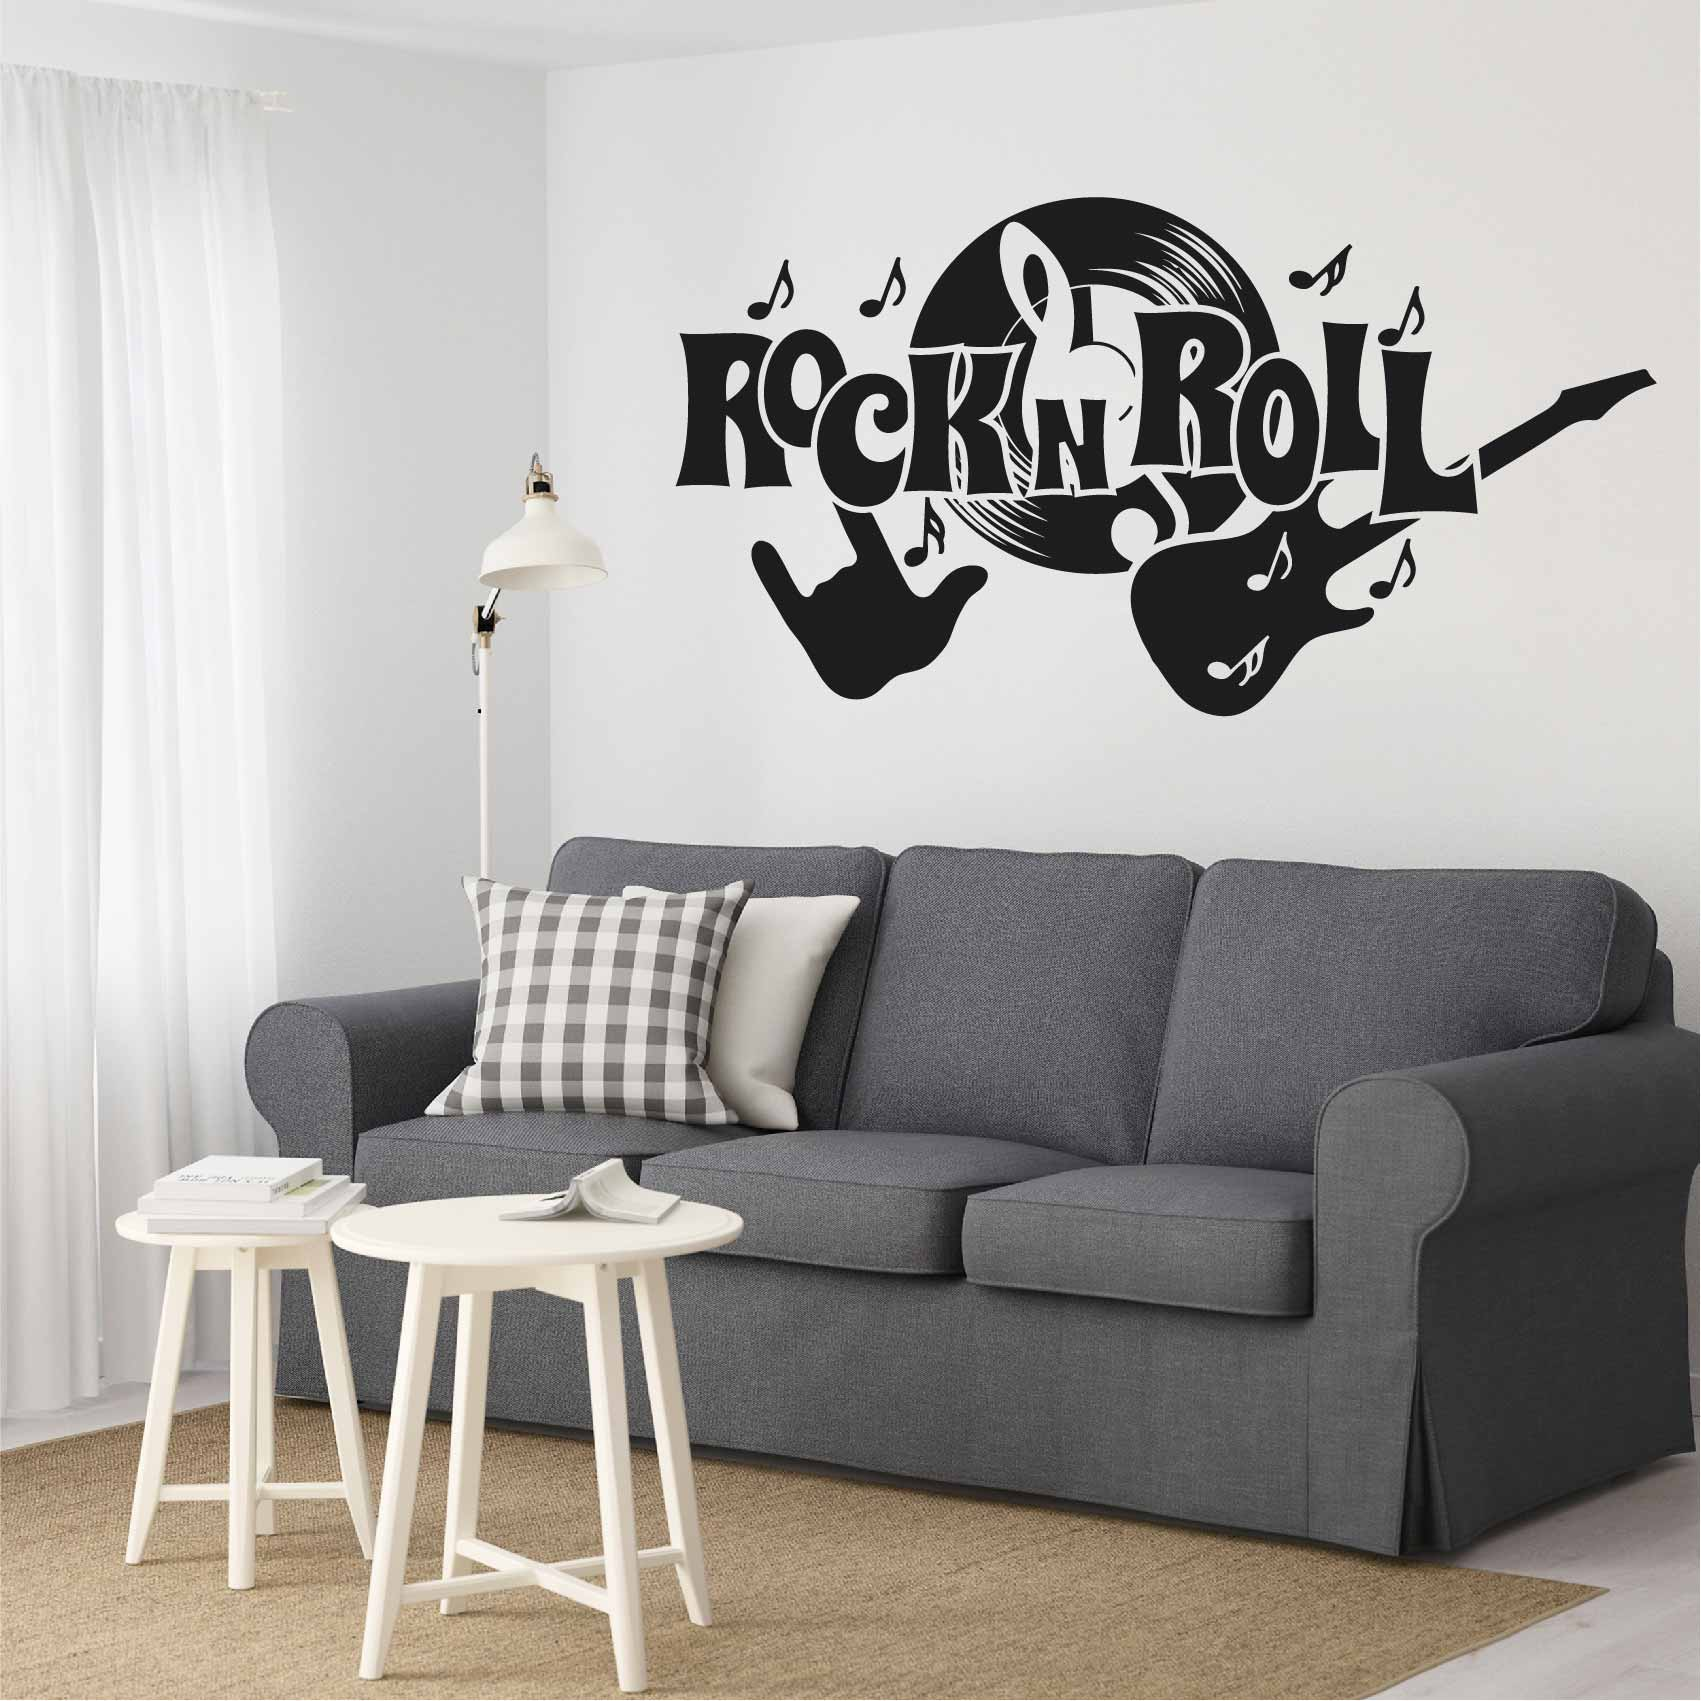 Stickers Rock n Roll - Autocollant muraux et deco